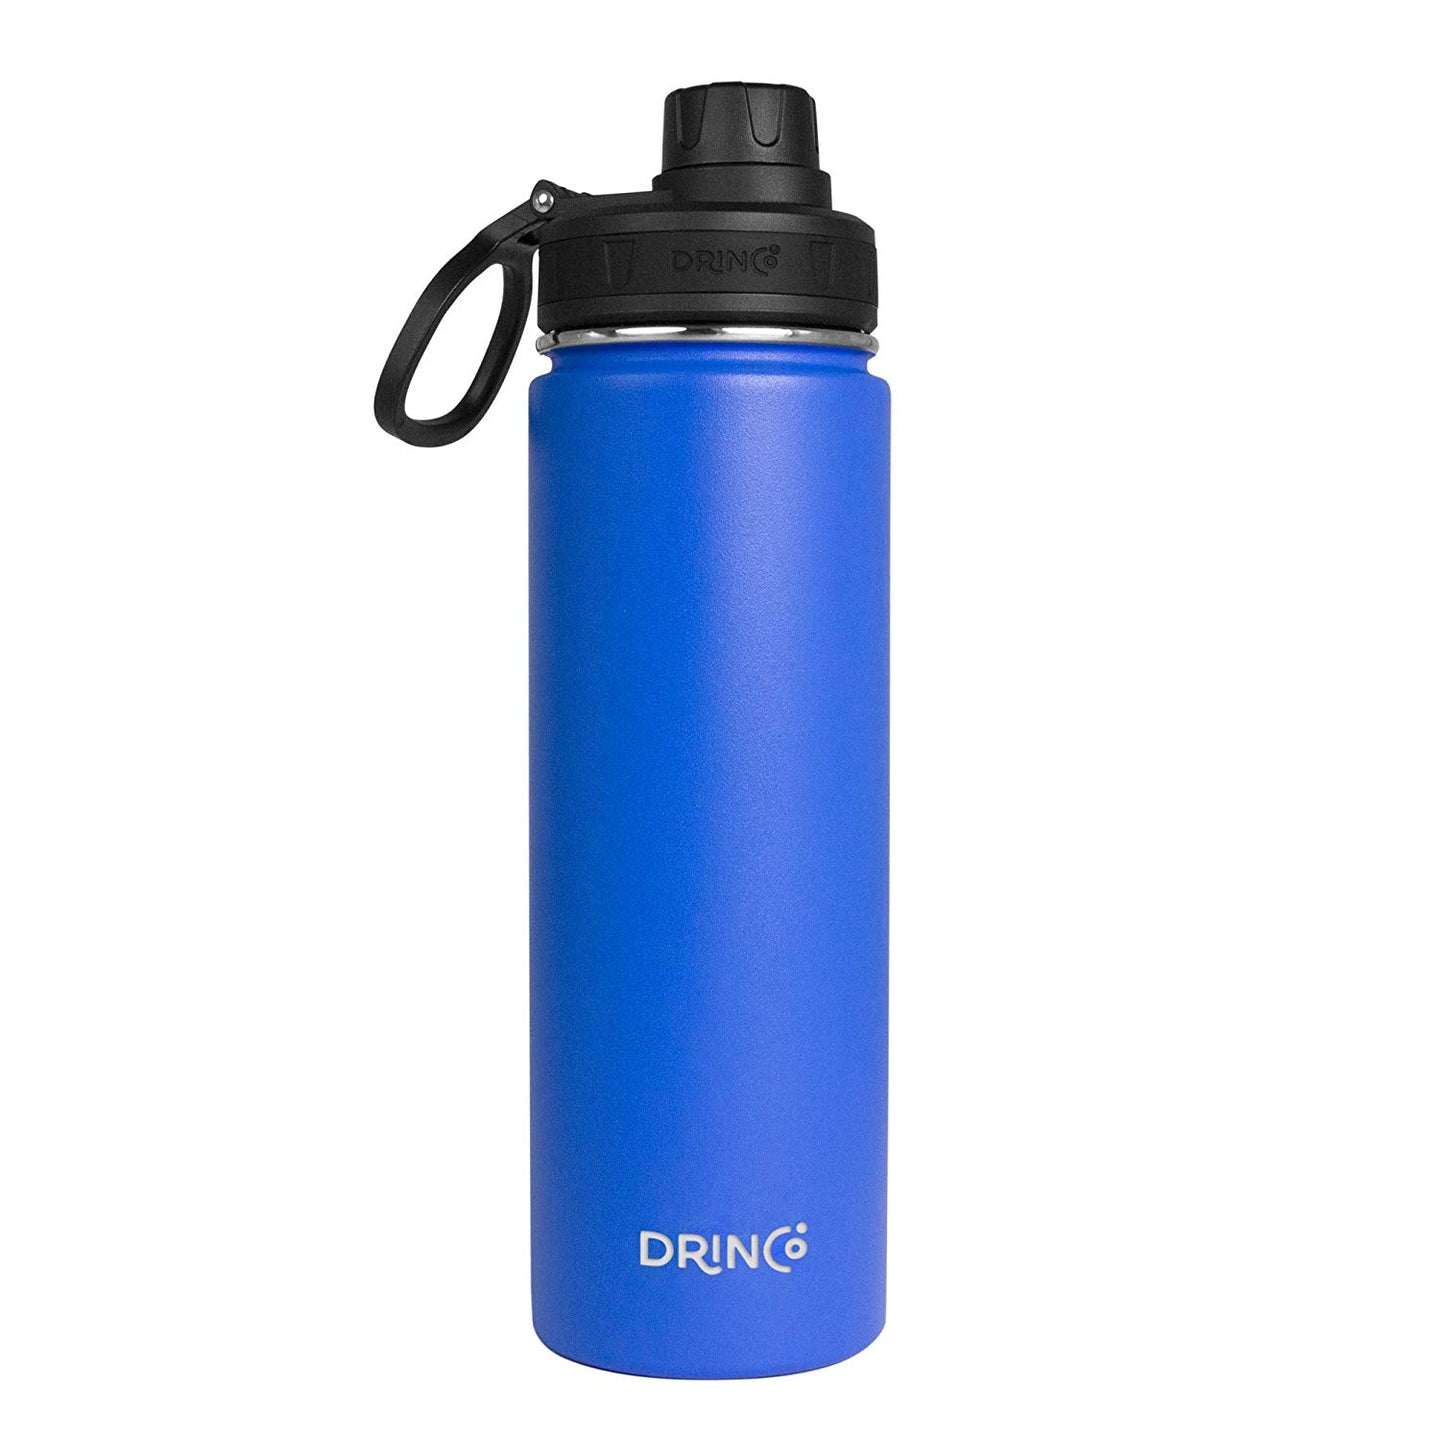 DRINCO® 20oz Stainless Steel Sport Water Bottle - Royal Blue